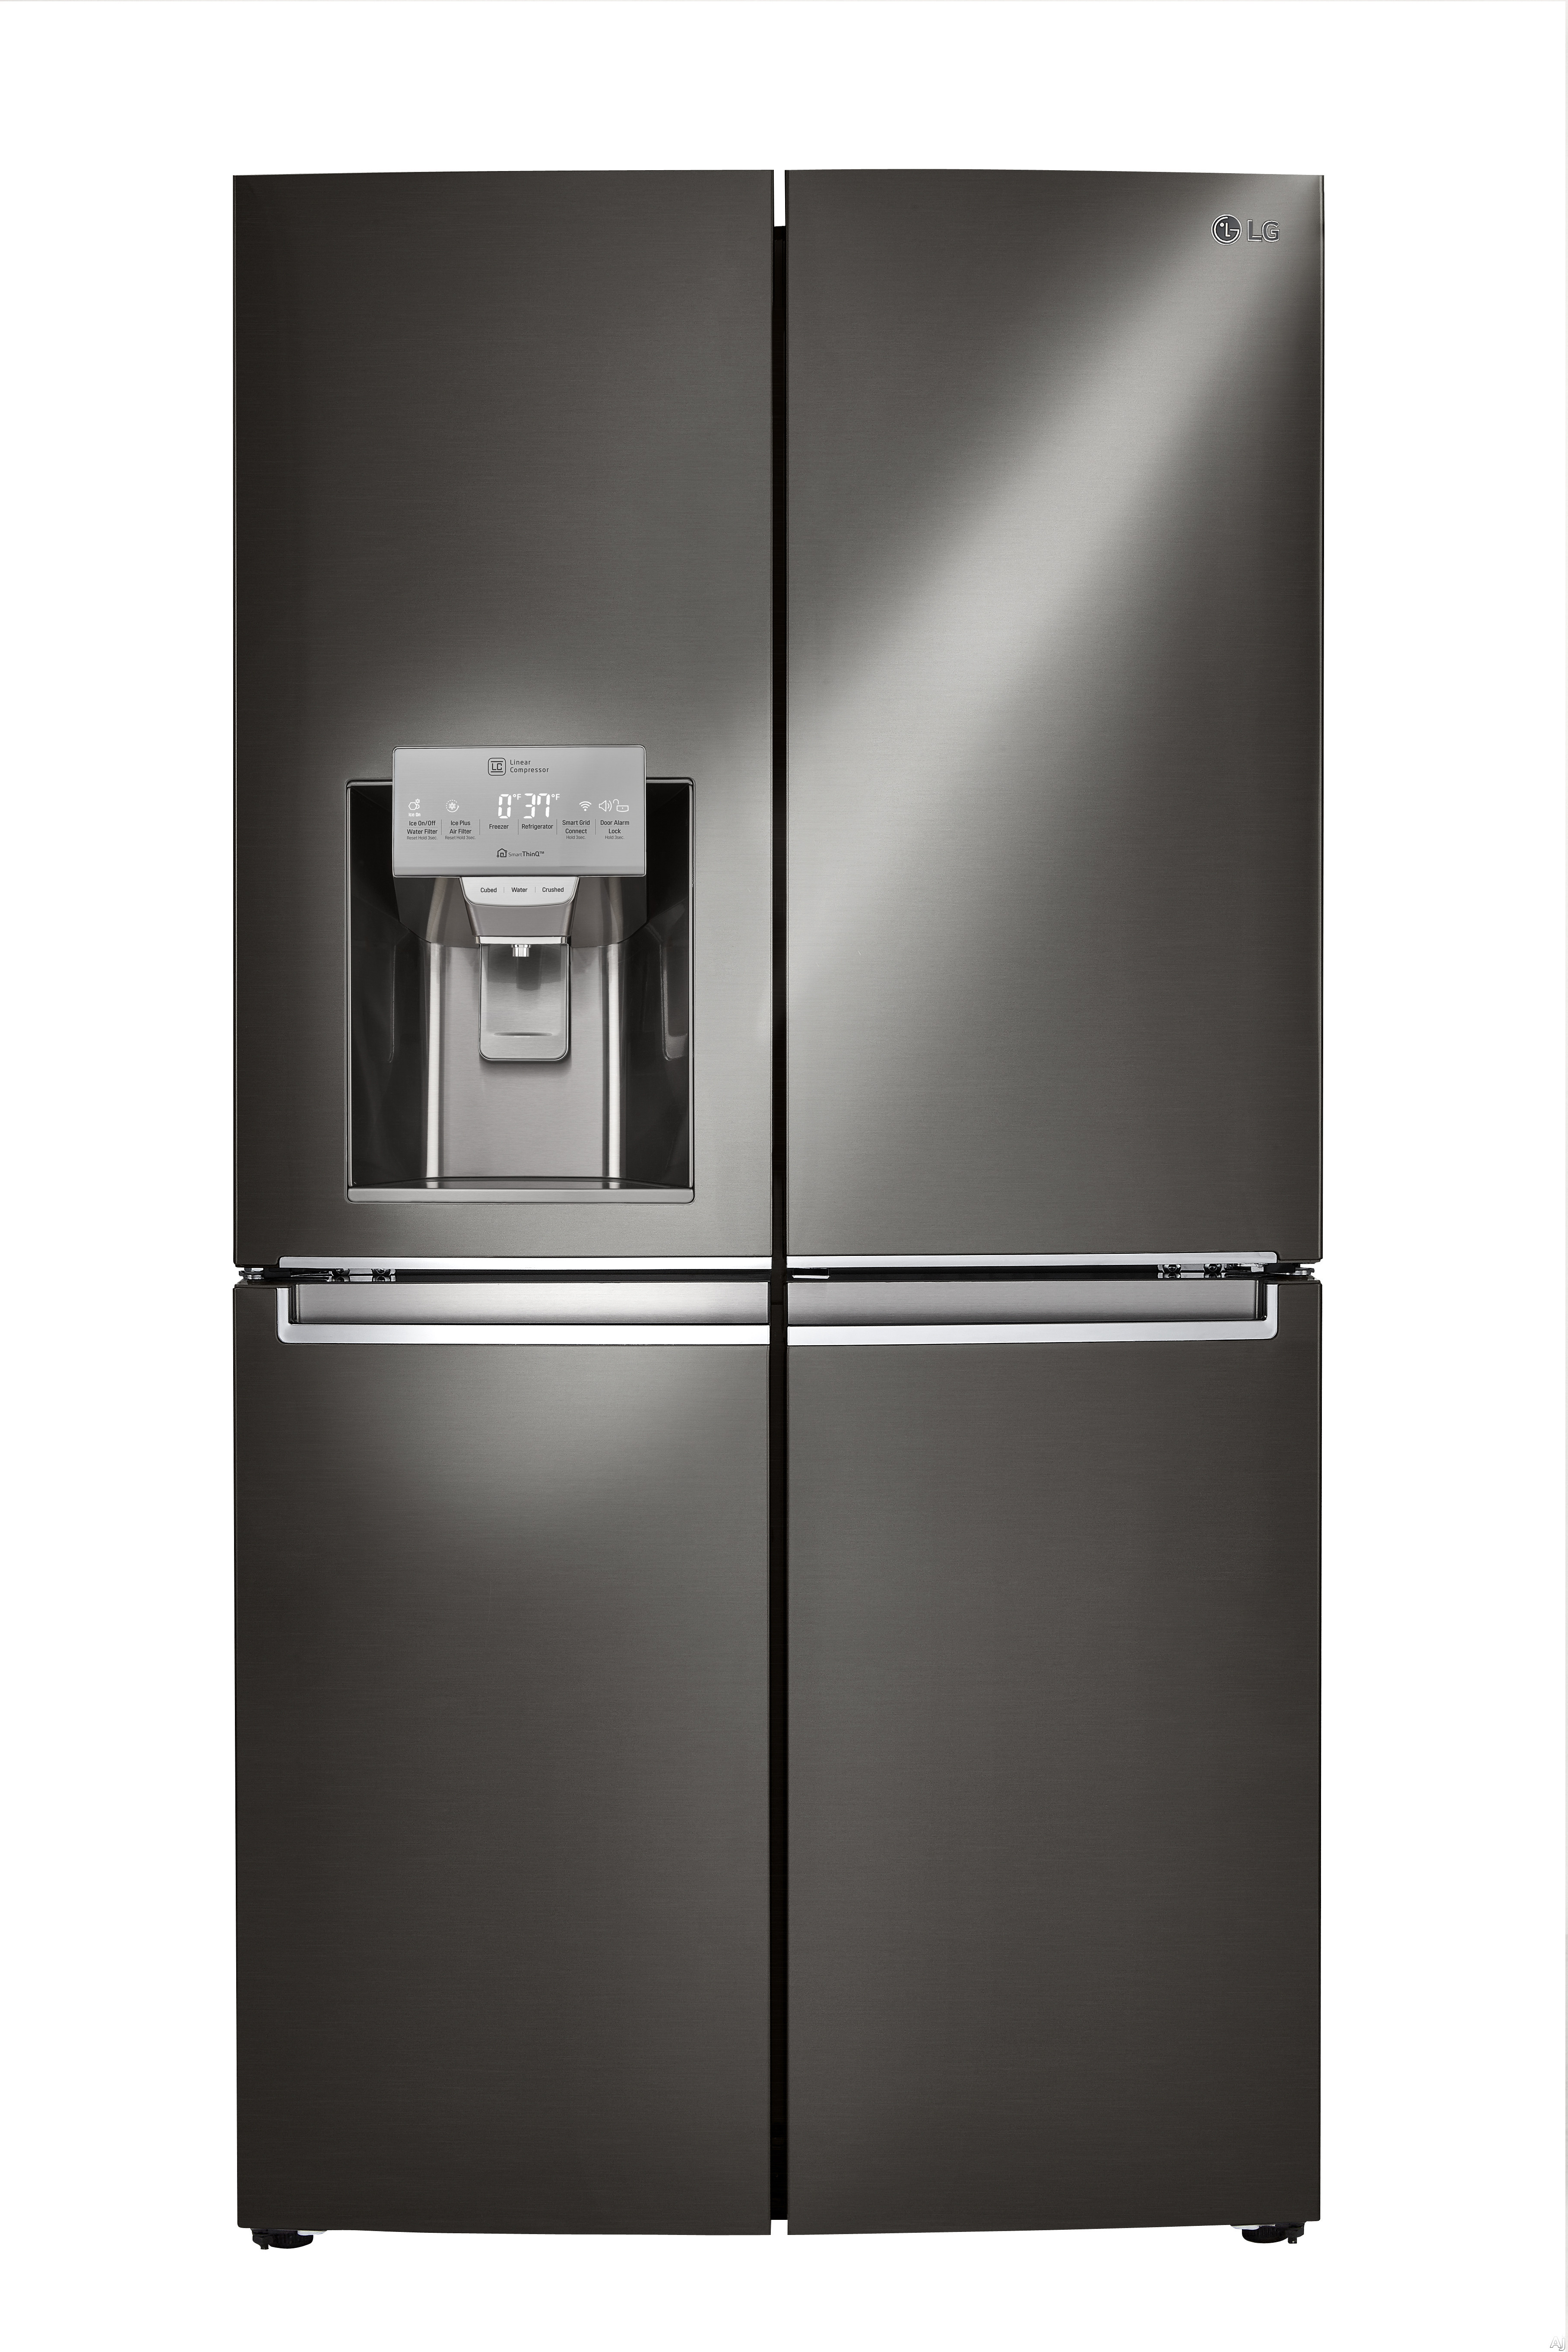 LG LNXC23766D 36 Inch Counter Depth 4-Door French Door Refrigerator with Door-in-Door®, ColdSaver™ Panel, Smudge Resistant, Tall Ice and Water Dispenser™, Ice and Water Filtration, Spill Protector™ Glass Shelves, Door Alarm, ENERGY STAR® and 22.7 cu. ft. Capaci